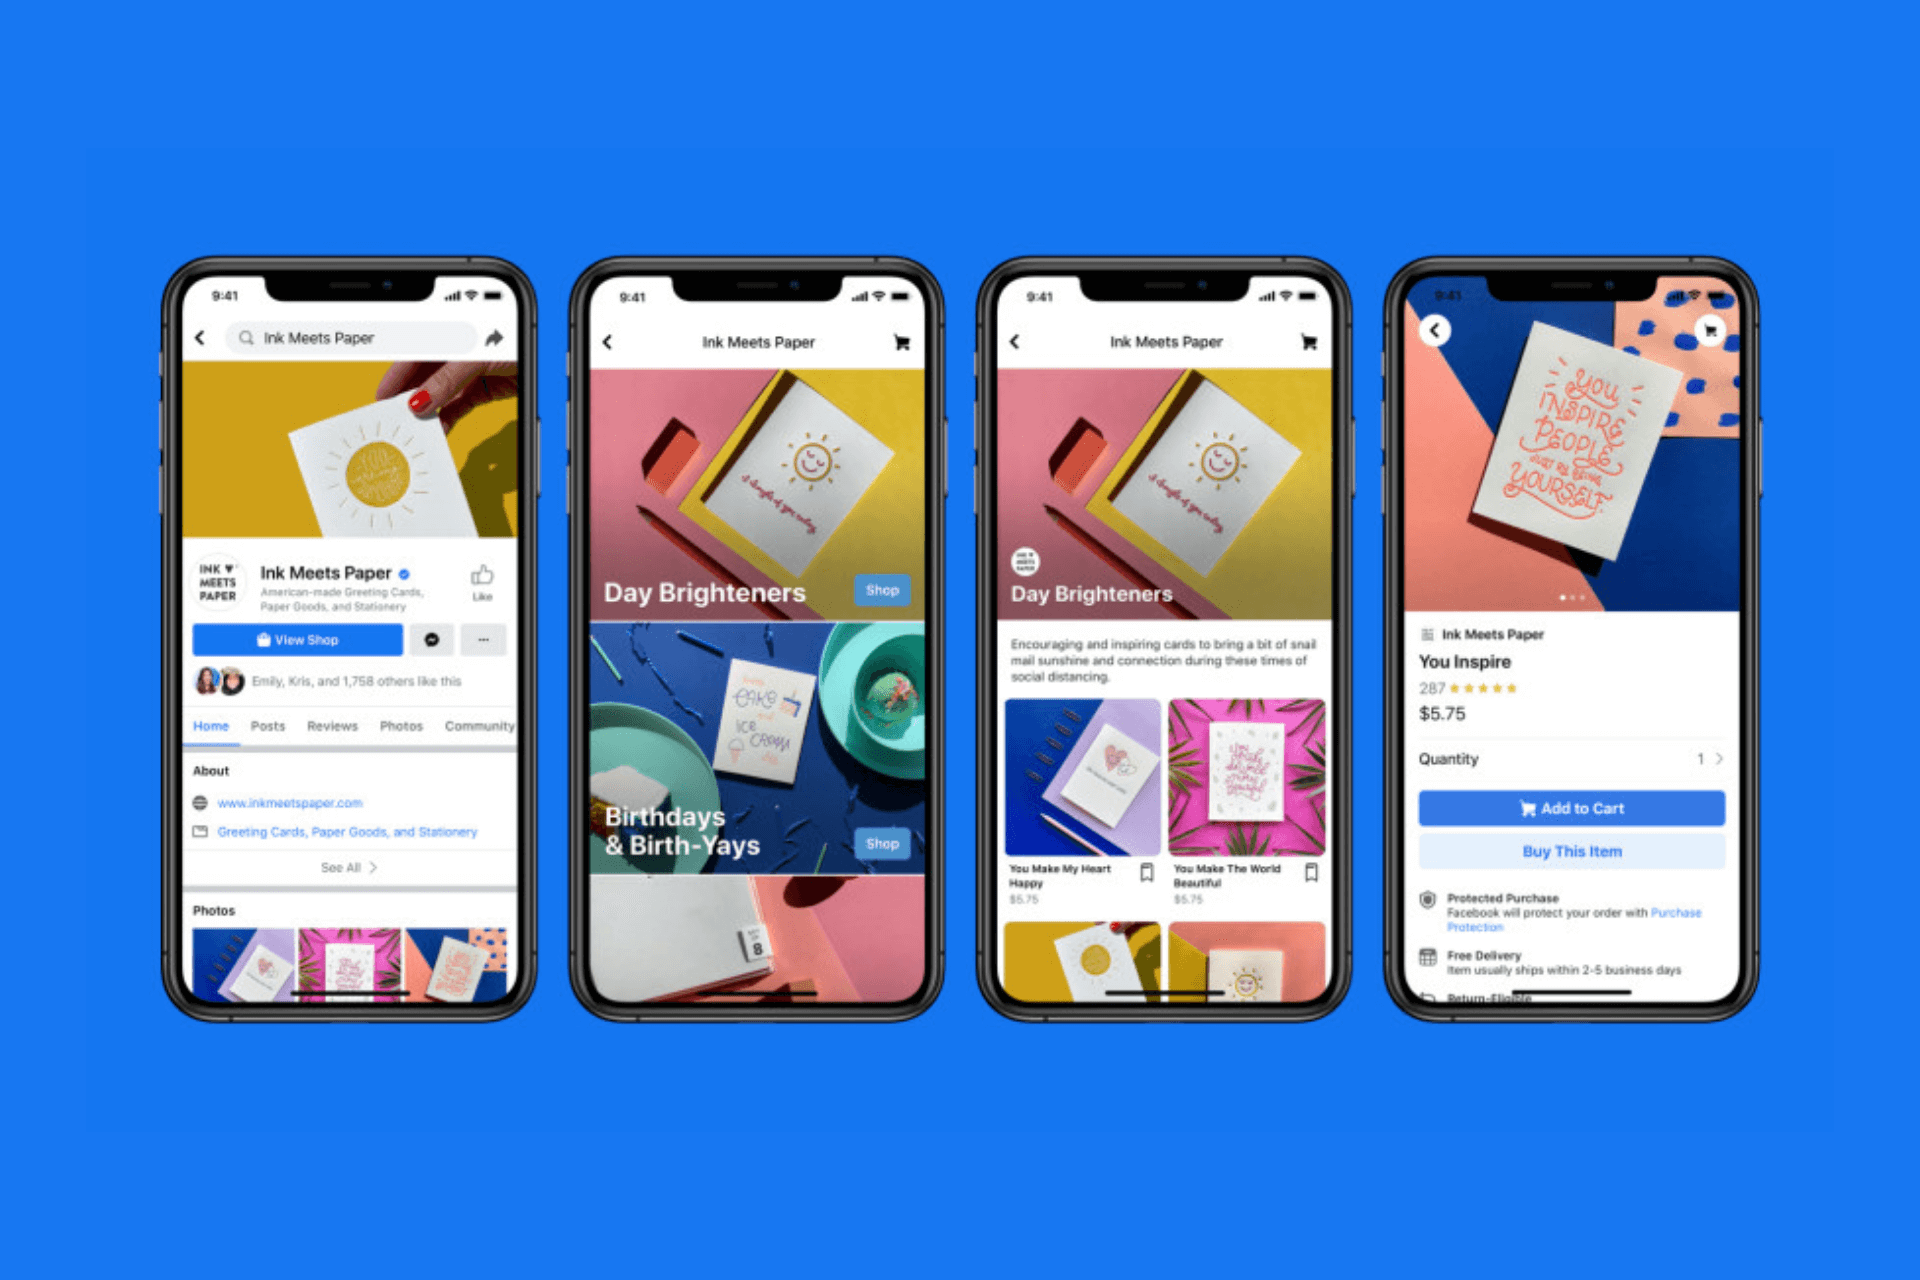 Facebook Brings in-app Shopping Cart to All Businesses and Creators in the U.S.